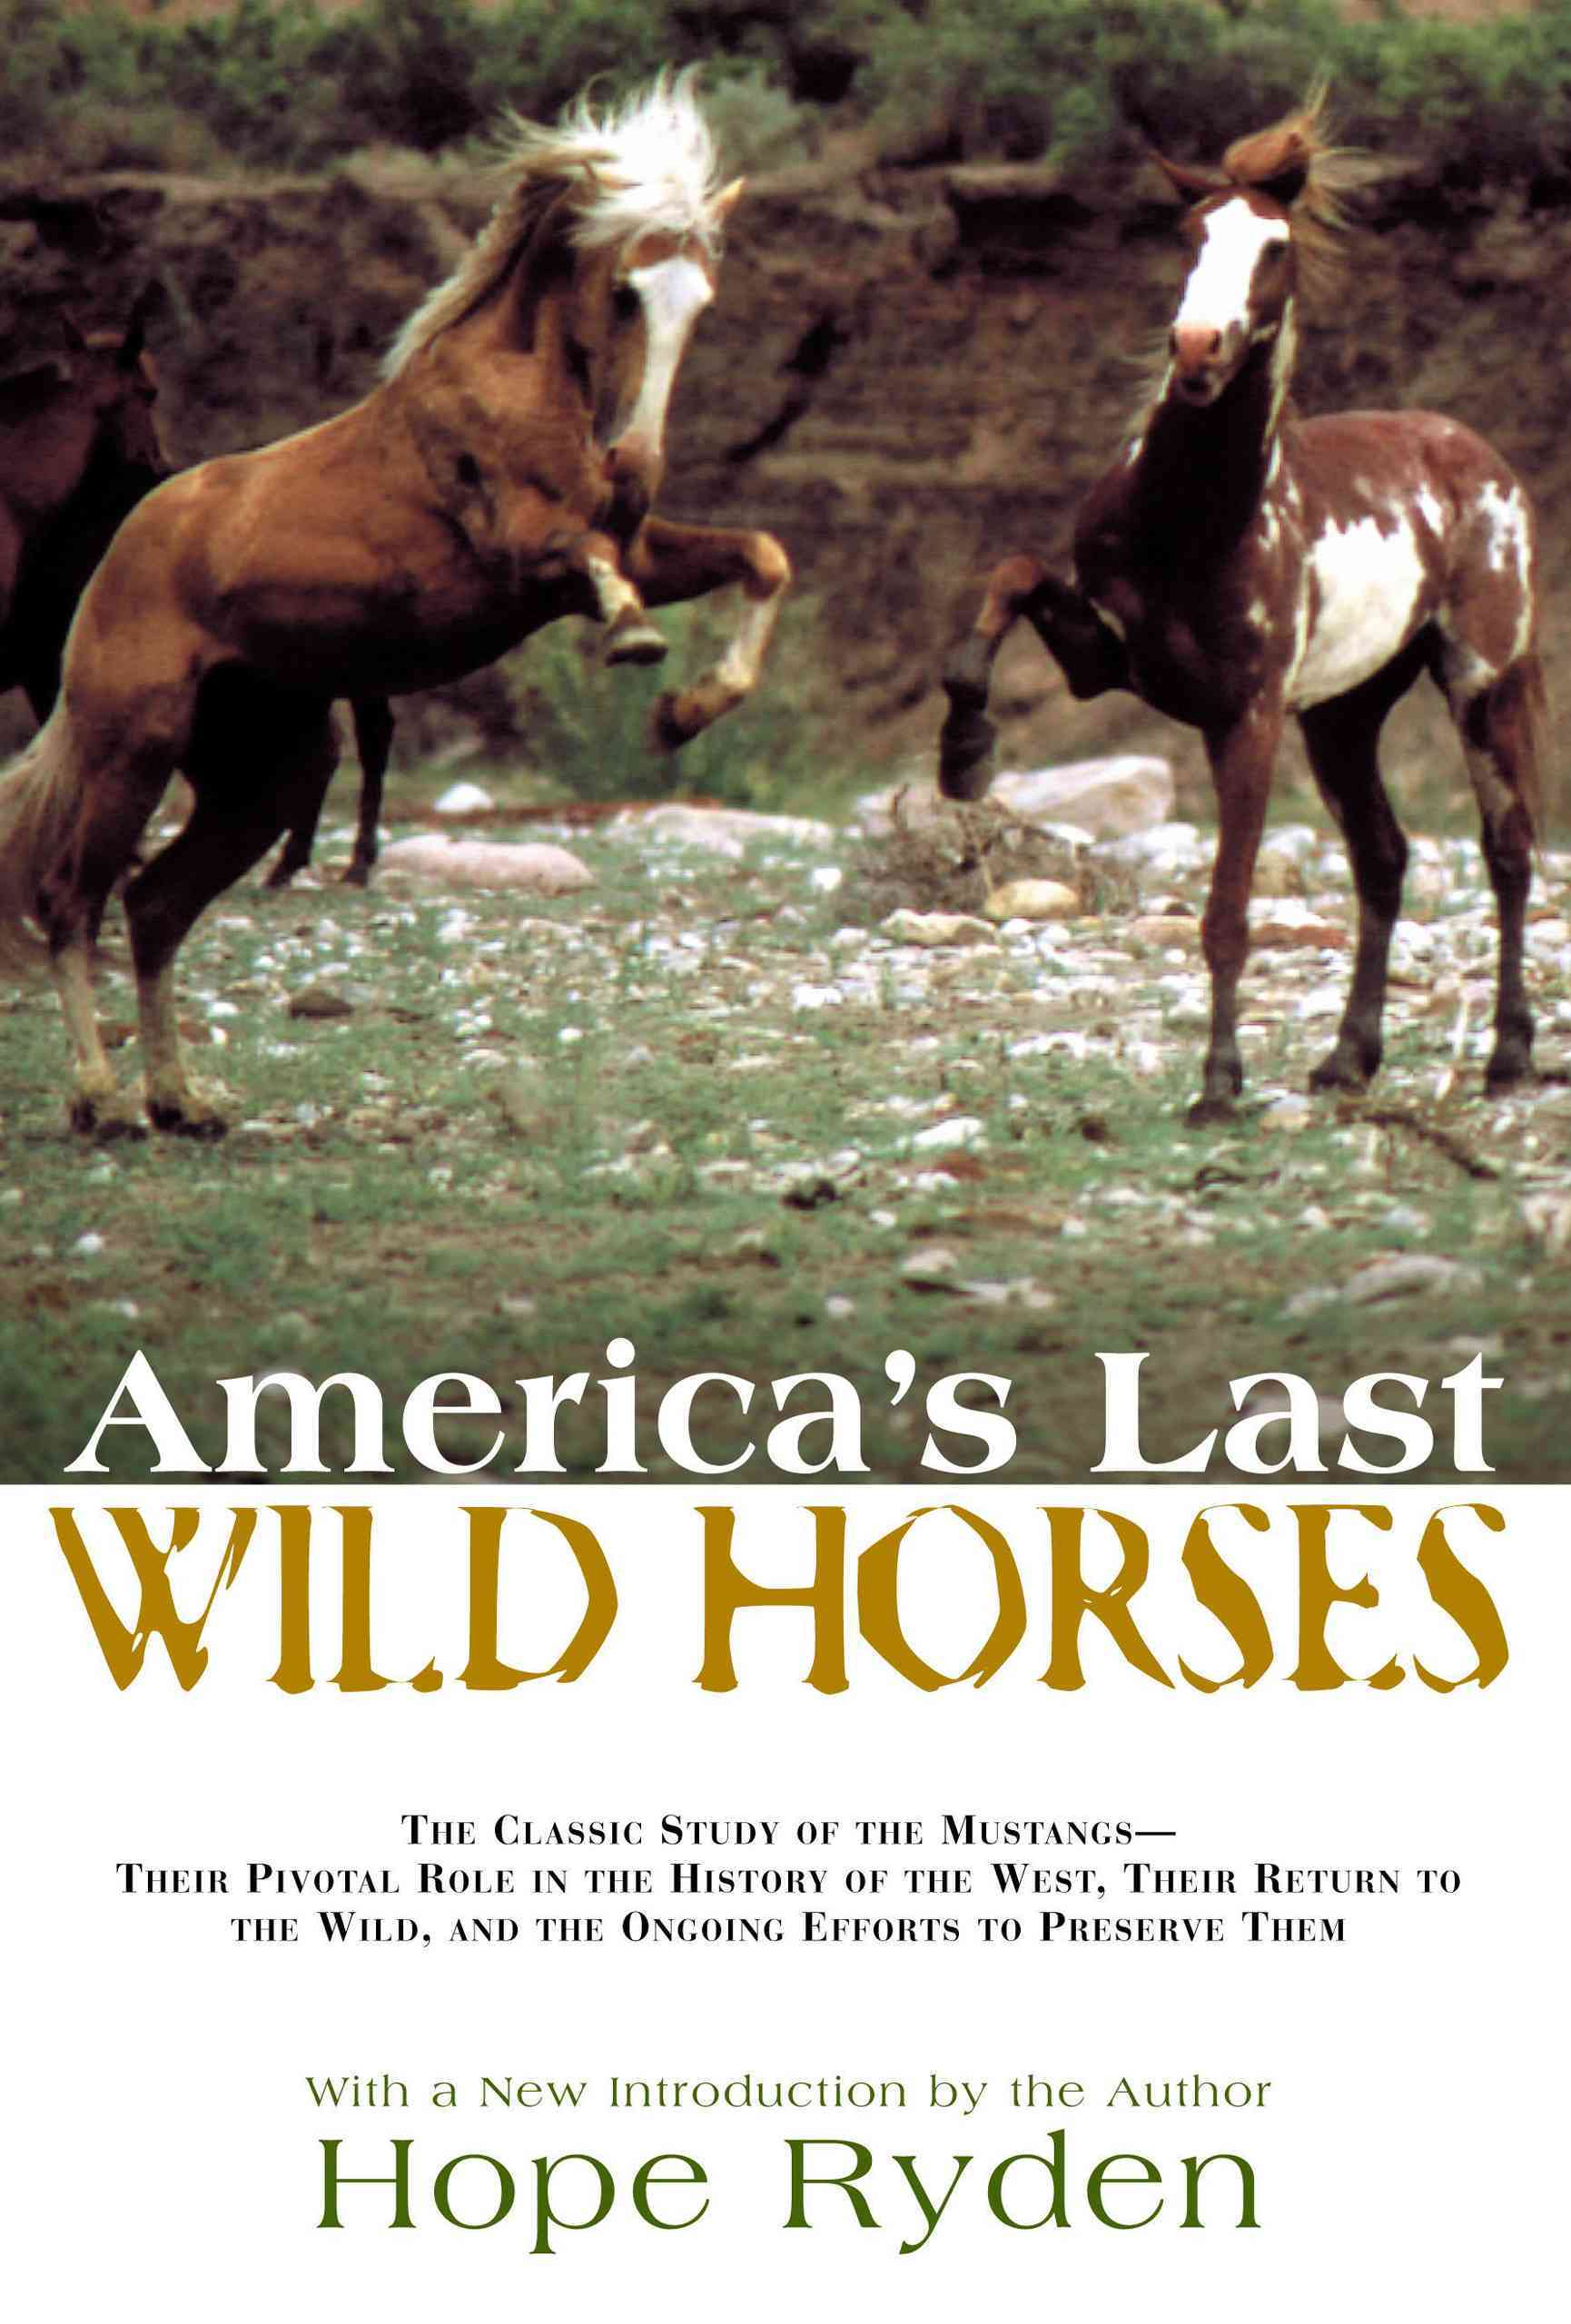 America's Last Wild Horses: The Classic Study of the Mustangs--their Pivotal Role in the History of the West, The... (Paperback)